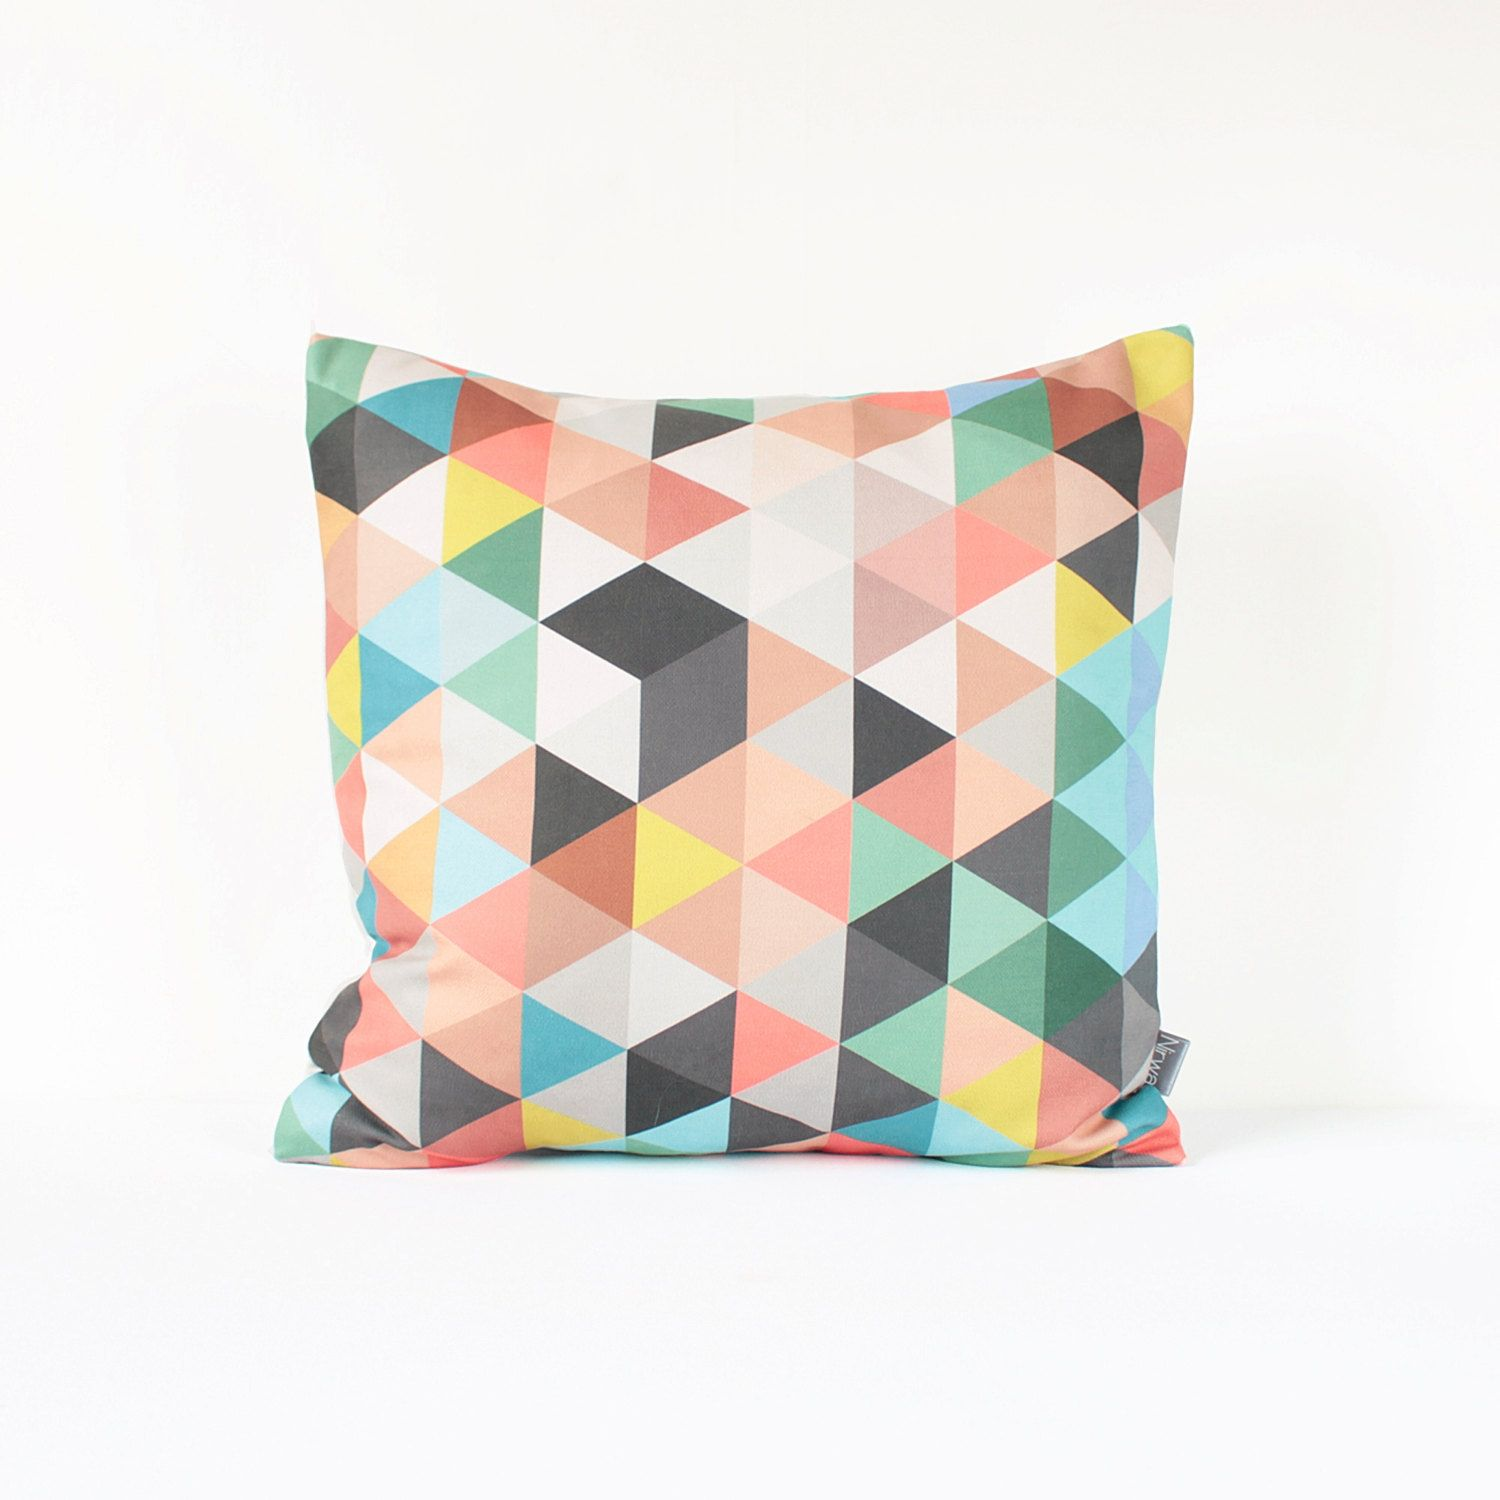 colorful geometric pillow cover multicolor geometric cushion  - colorful geometric pillow cover multicolor geometric cushion trianglepillow modern home decor mothers day gift pink mint home decor geometric